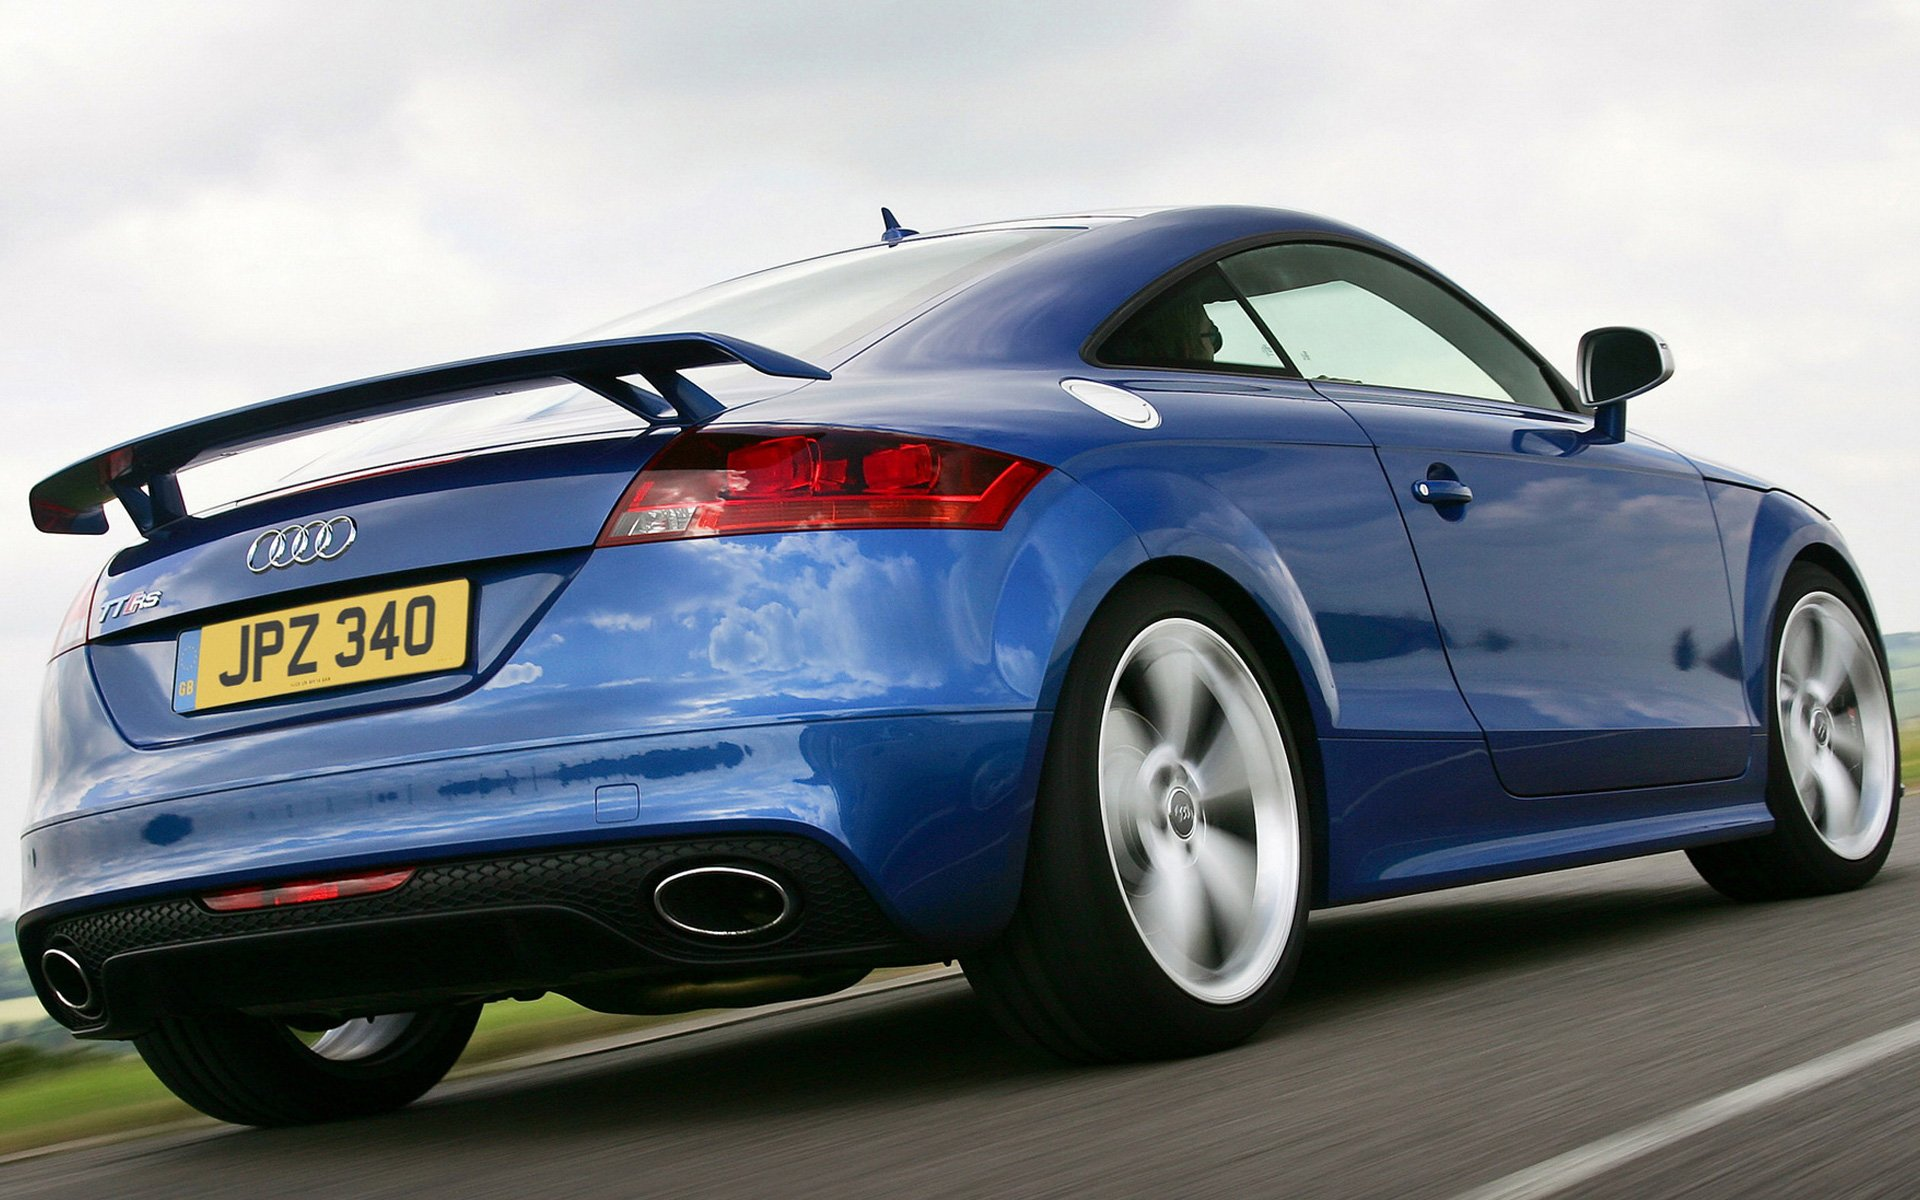 Image Gallery For Audi Tt Rs Wallpapers   illinois liver 1920x1200